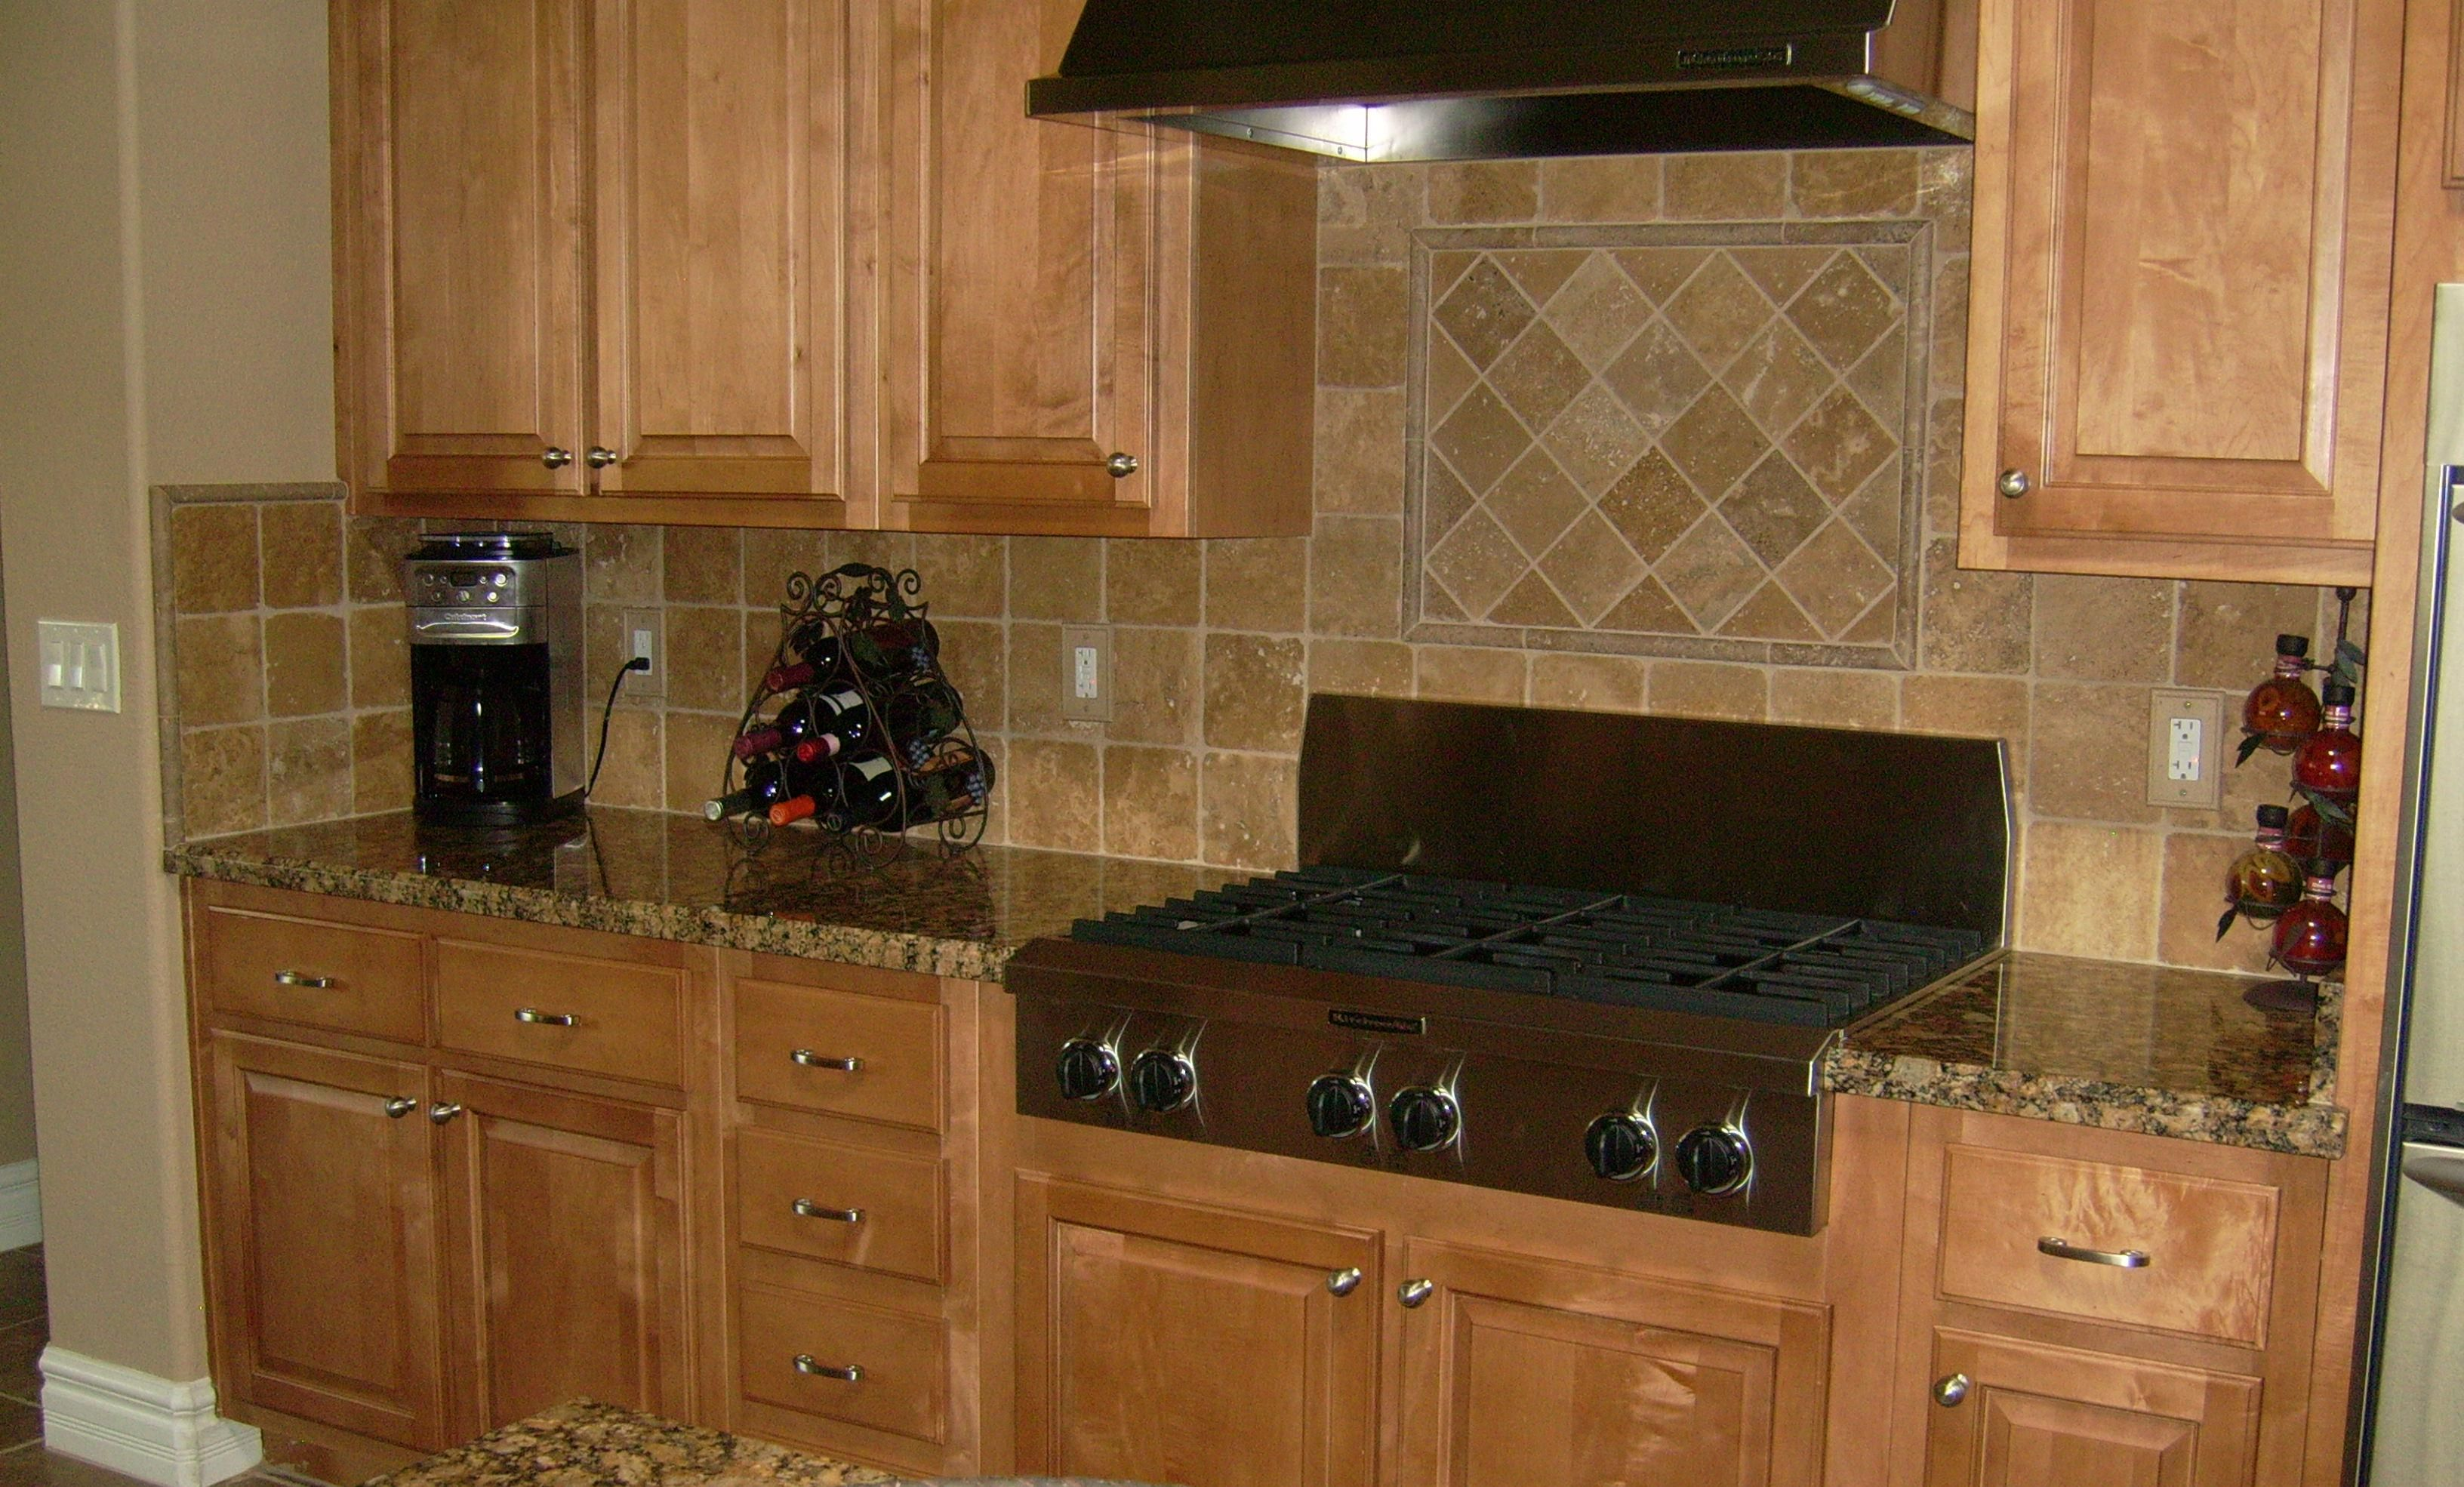 I think were going to do something like this for the kitchen back kitchen kitchen tile design for minimalist kitchen design ideas with tile backsplash design ideas with kitchen units design with stove and range hood with dailygadgetfo Choice Image